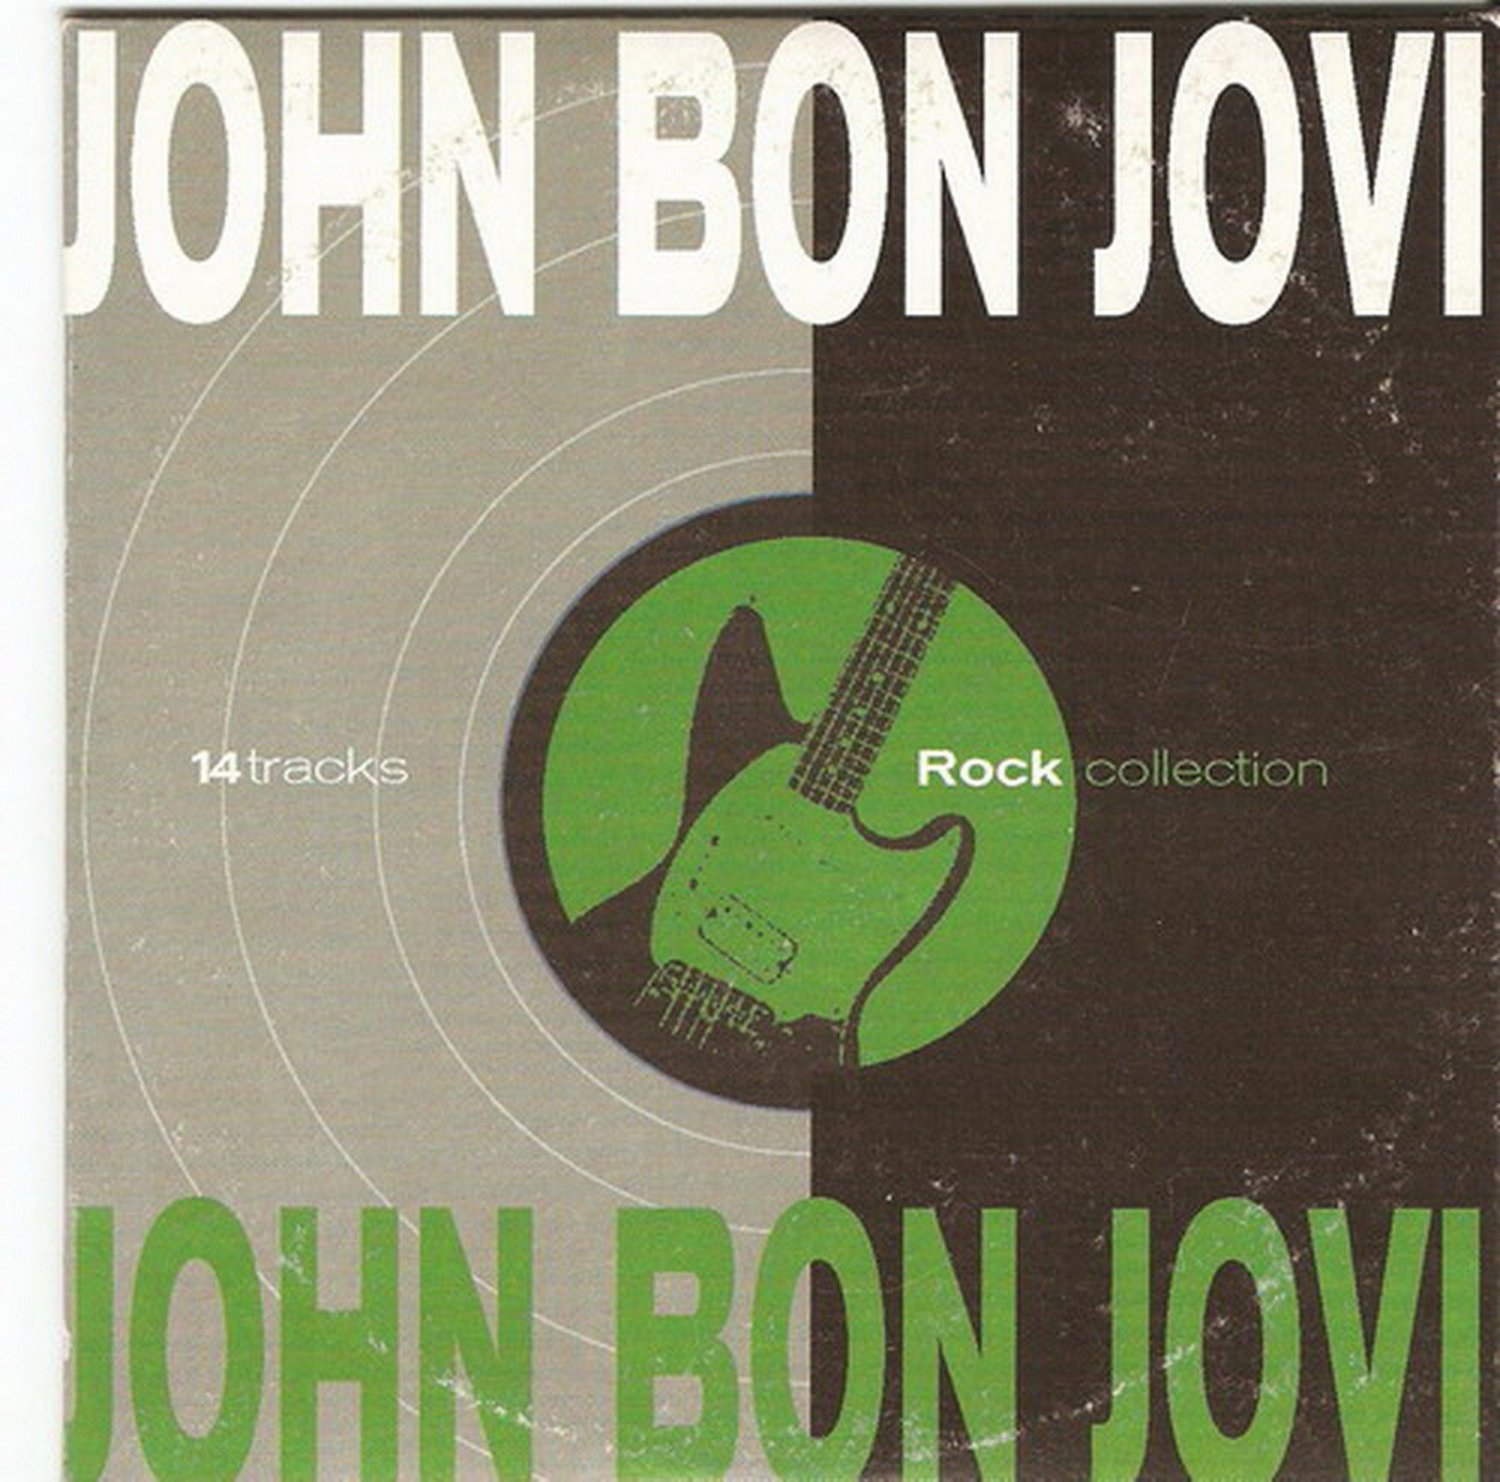 JOHN BON JOVI  14 tracks Collectible CD   JOHN BON JOVI